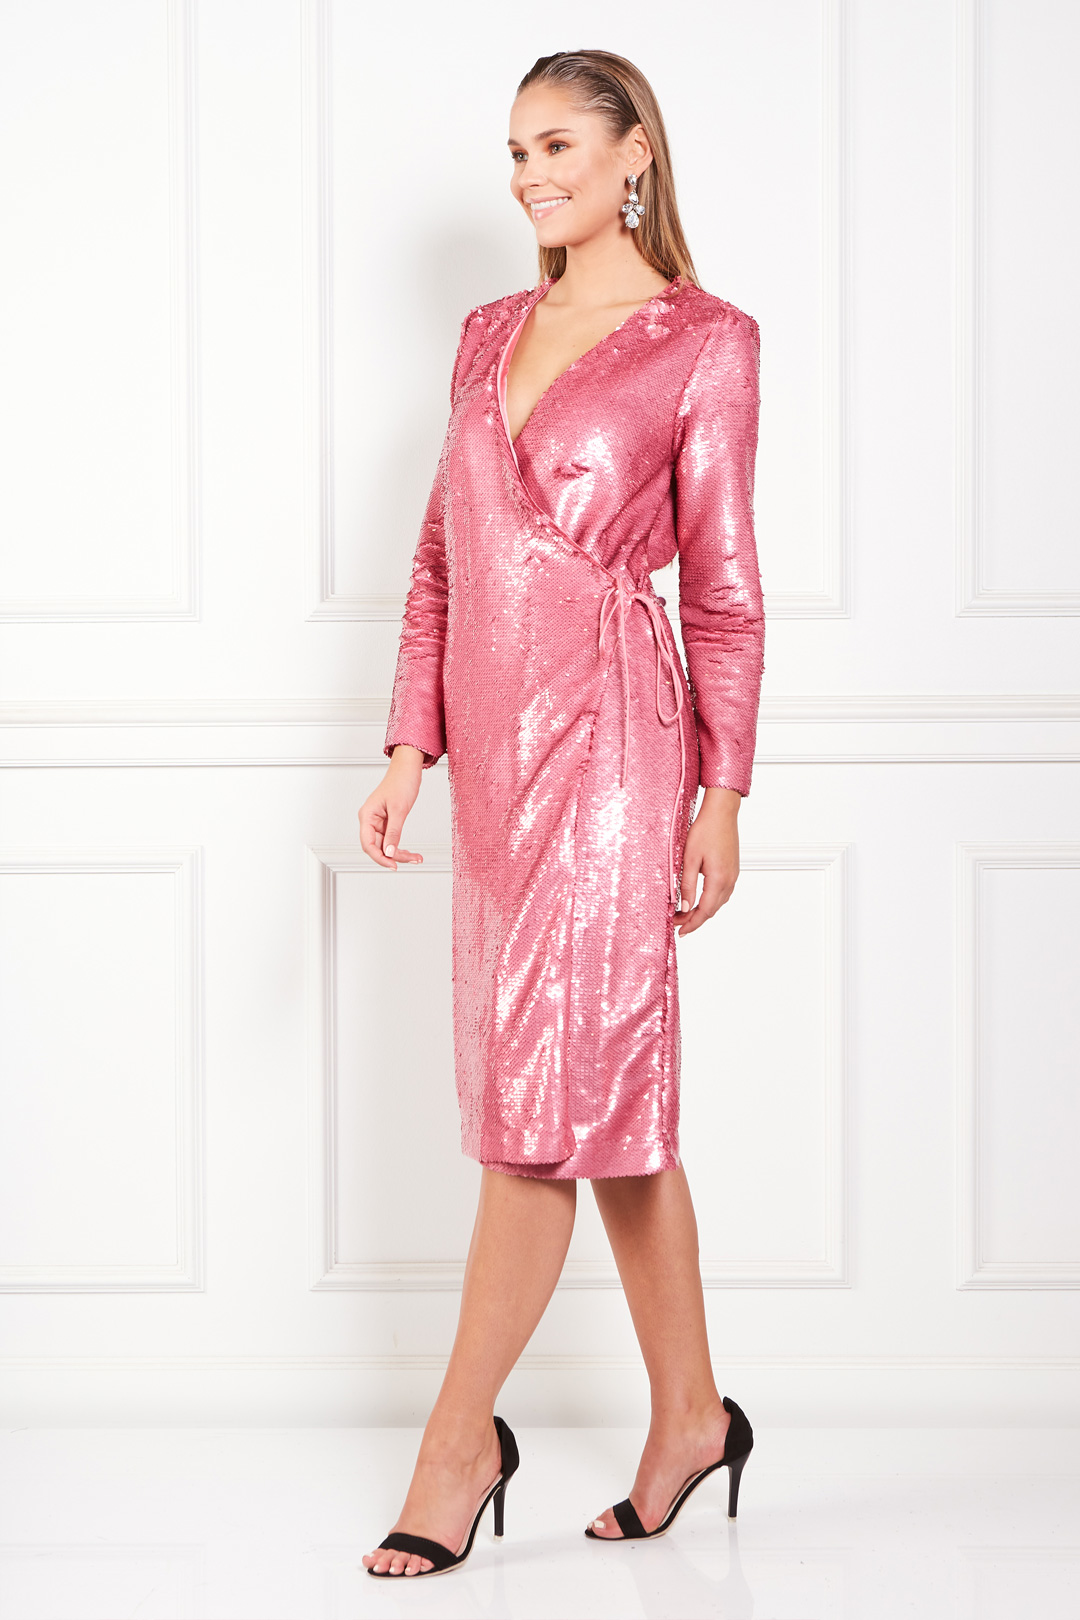 Sequined Satin Wrap Pink Dress